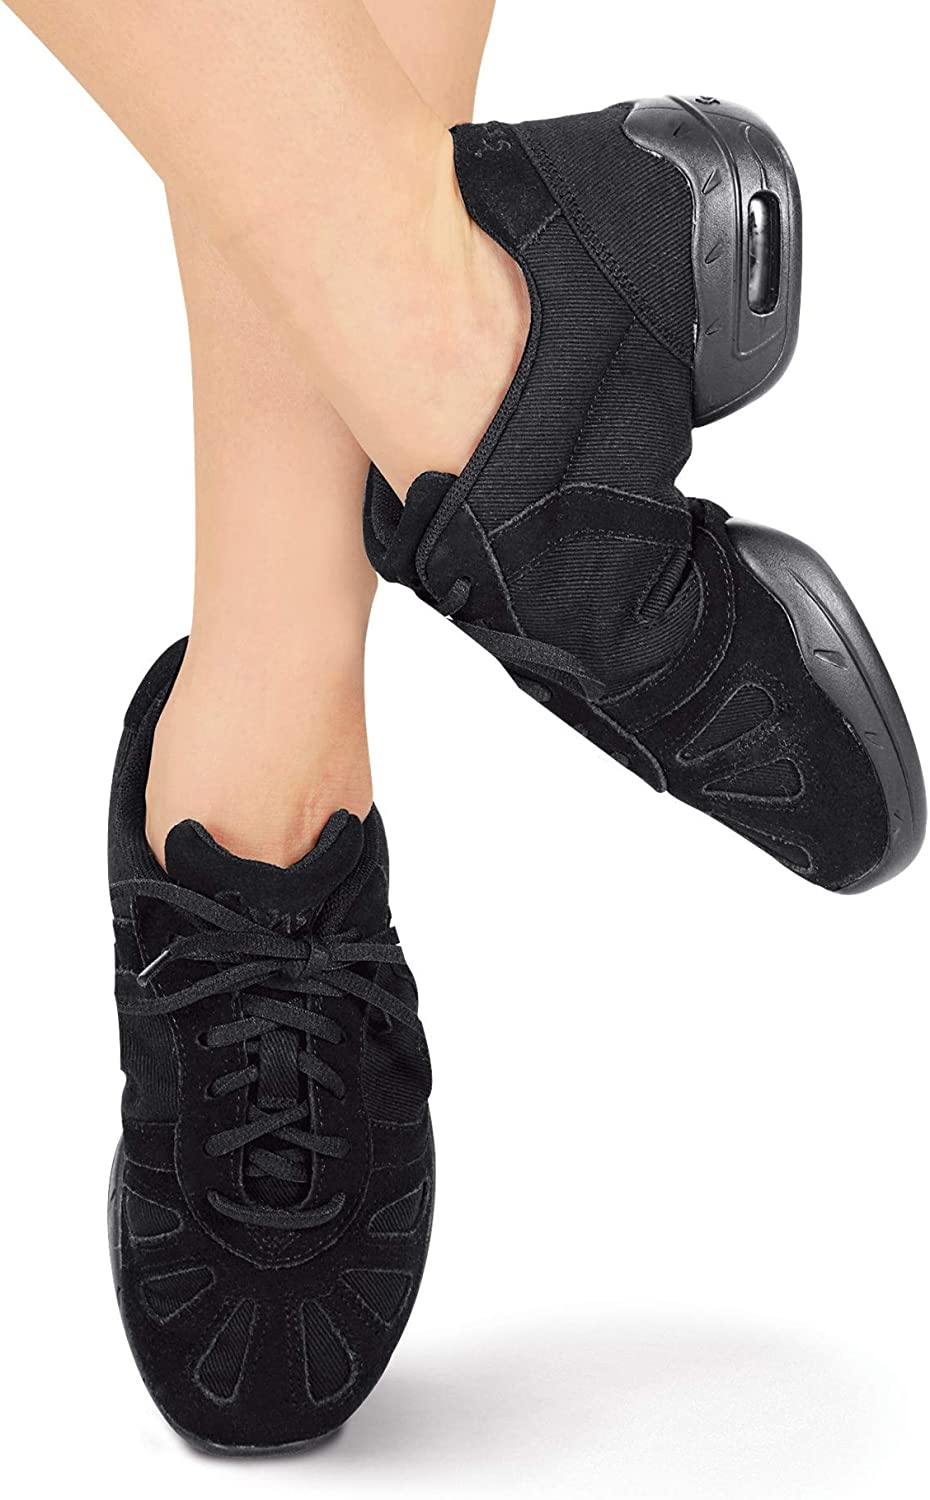 Adult Hi-Step Dance Sneaker P40CBLK05 Black 5 M US